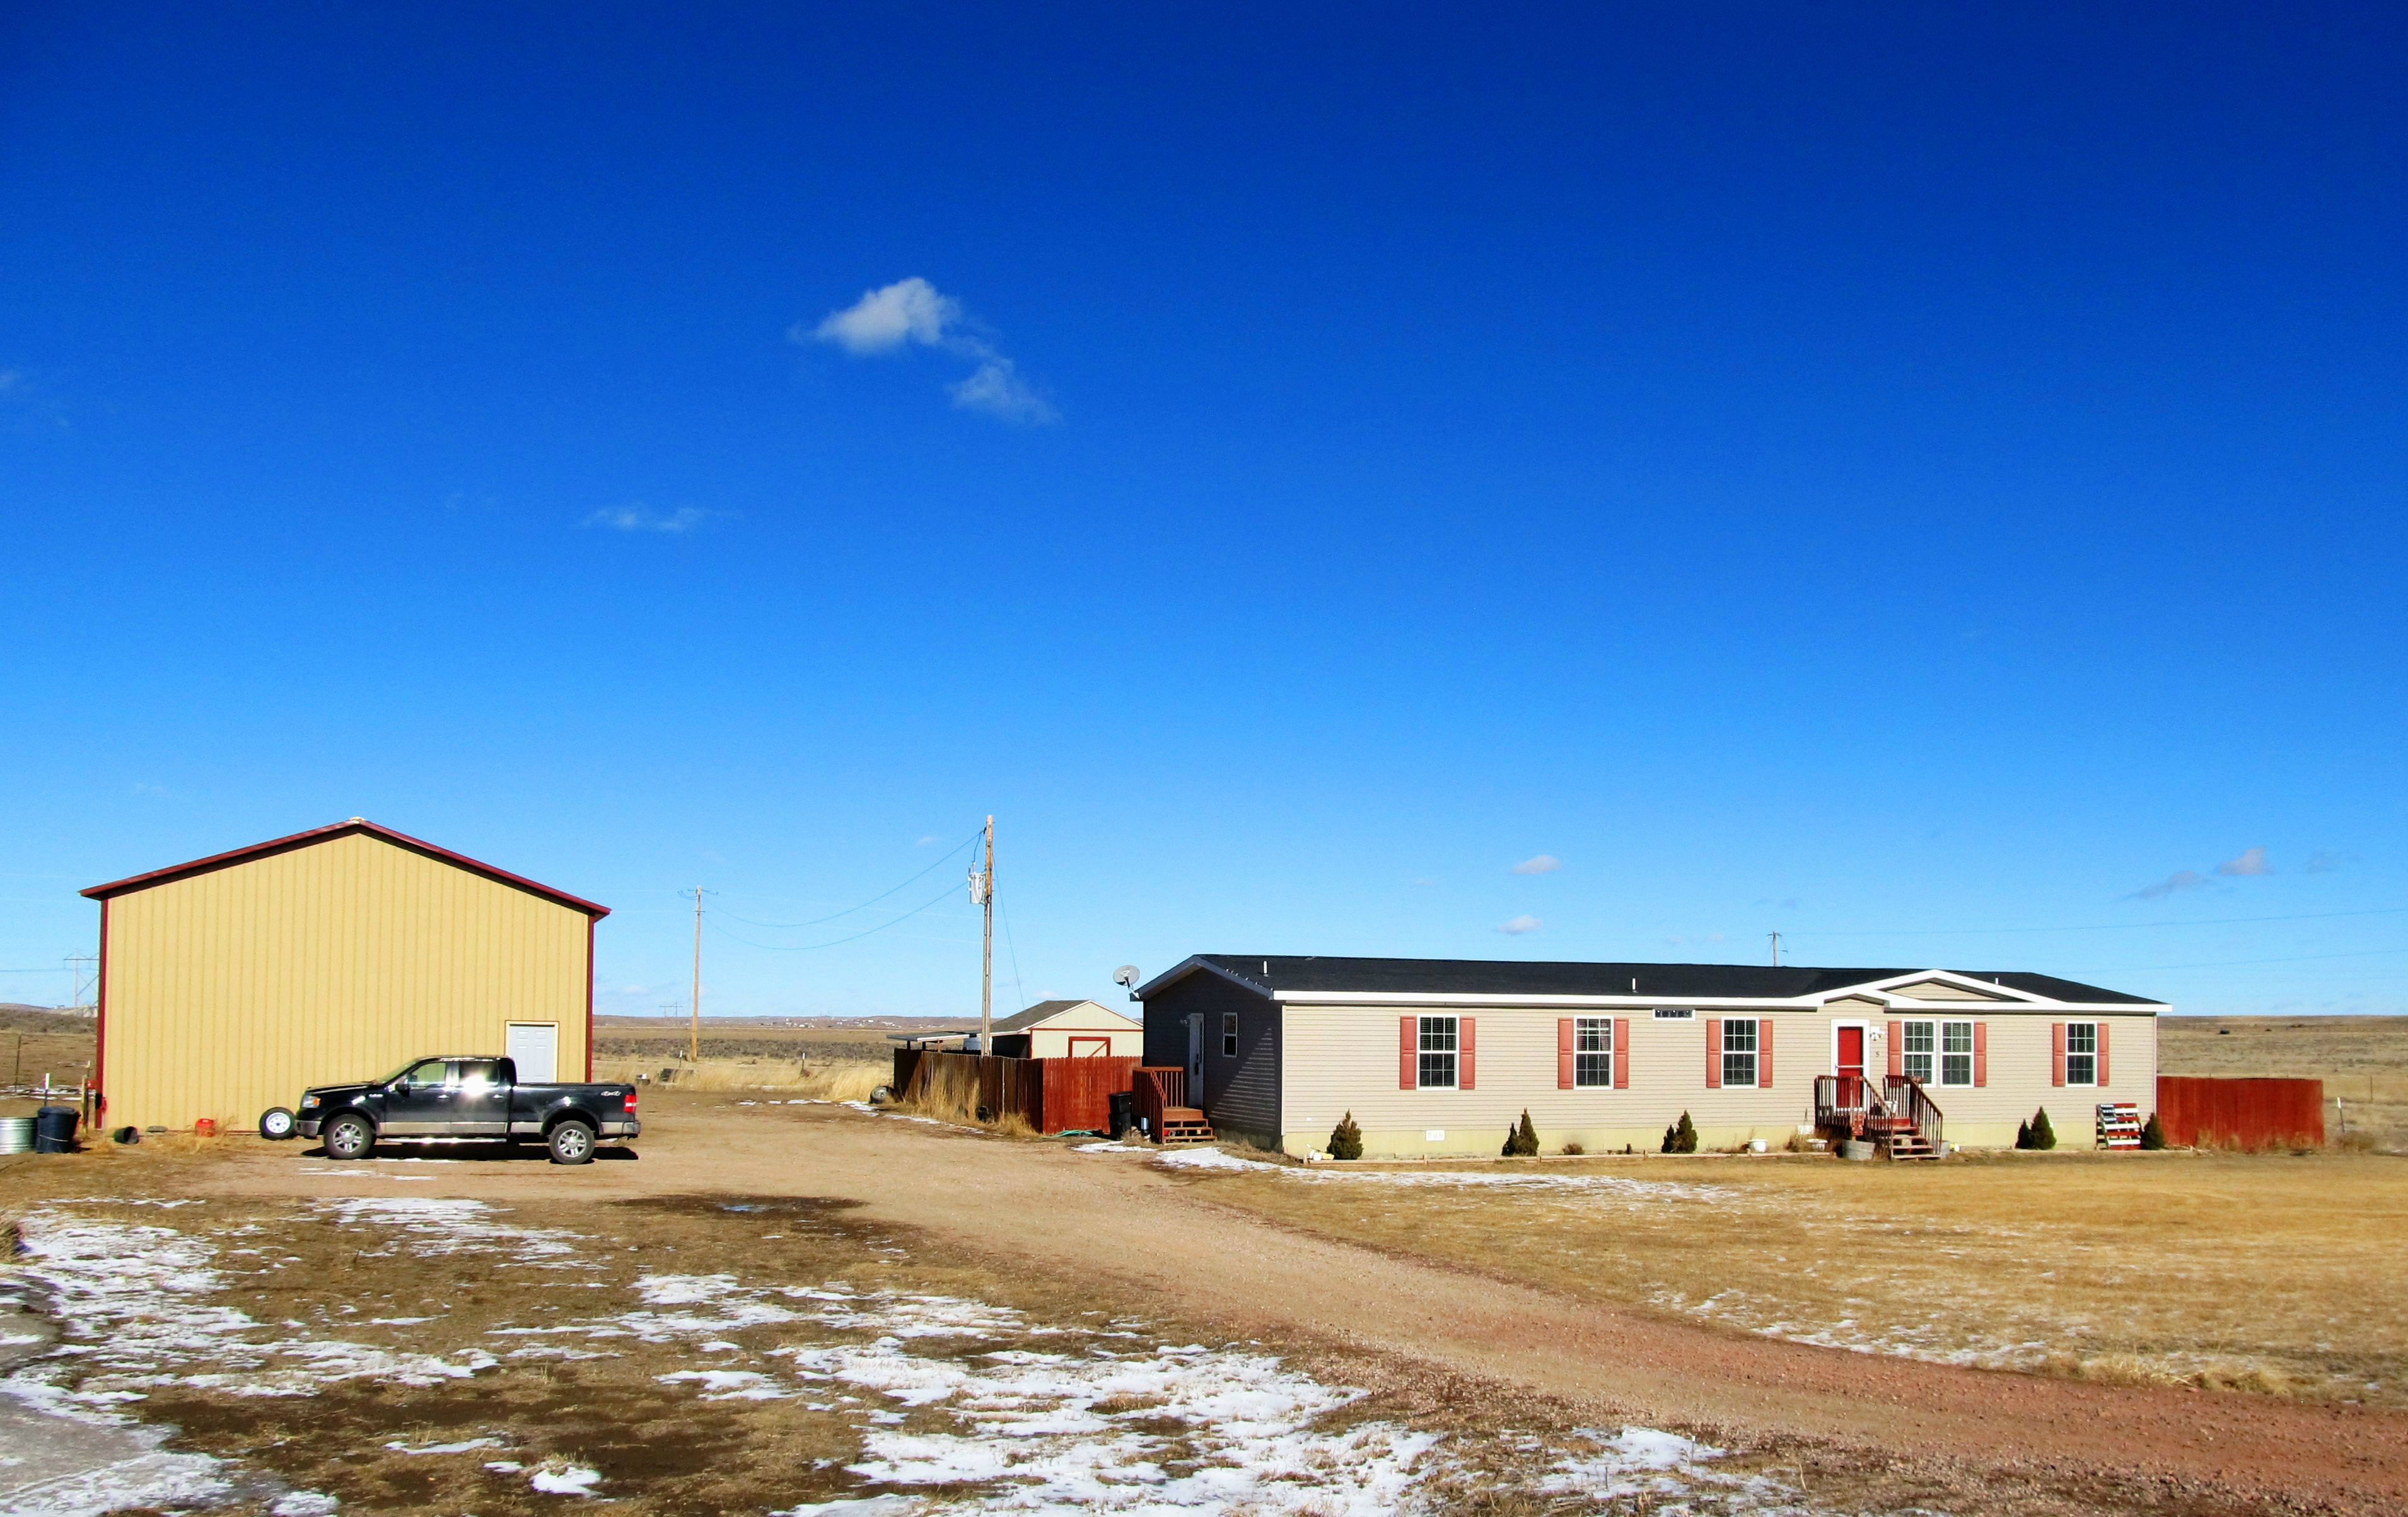 5 Mutton Bustin St. in Gillette offers 5 fenced acres, a